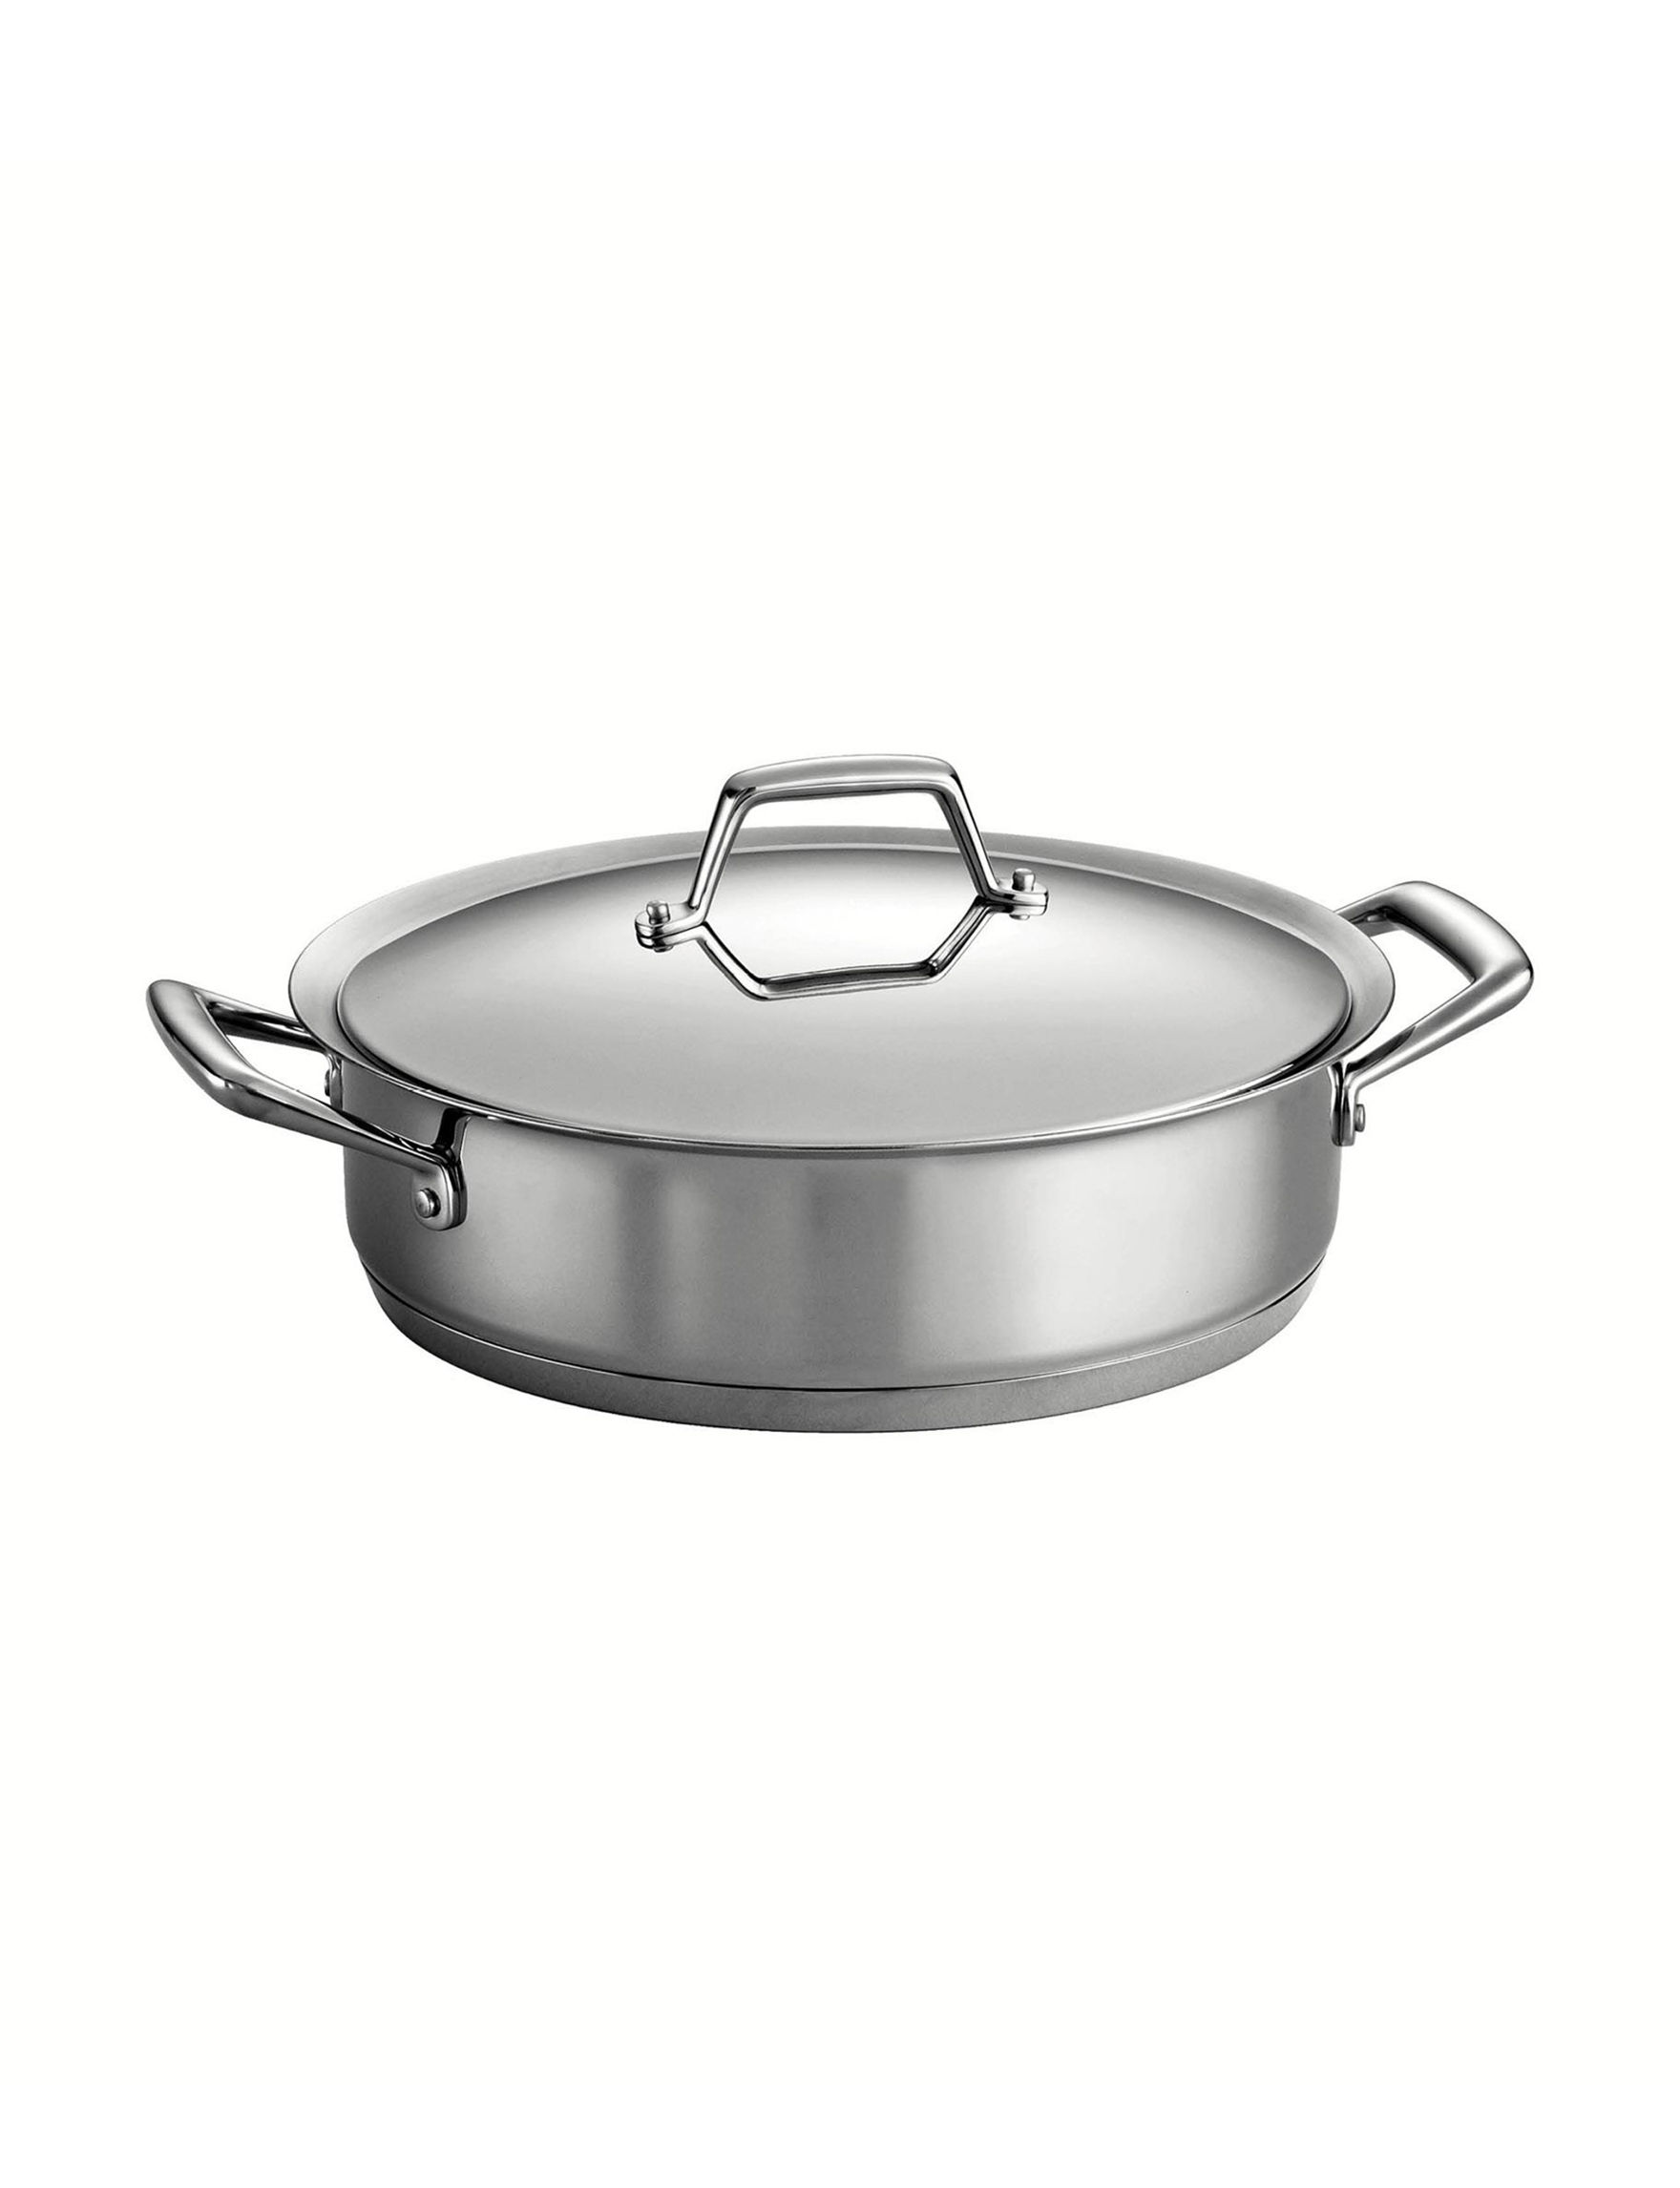 Tramontina 5-qt. Gourmet Prima Covered Casserole | Stage ...